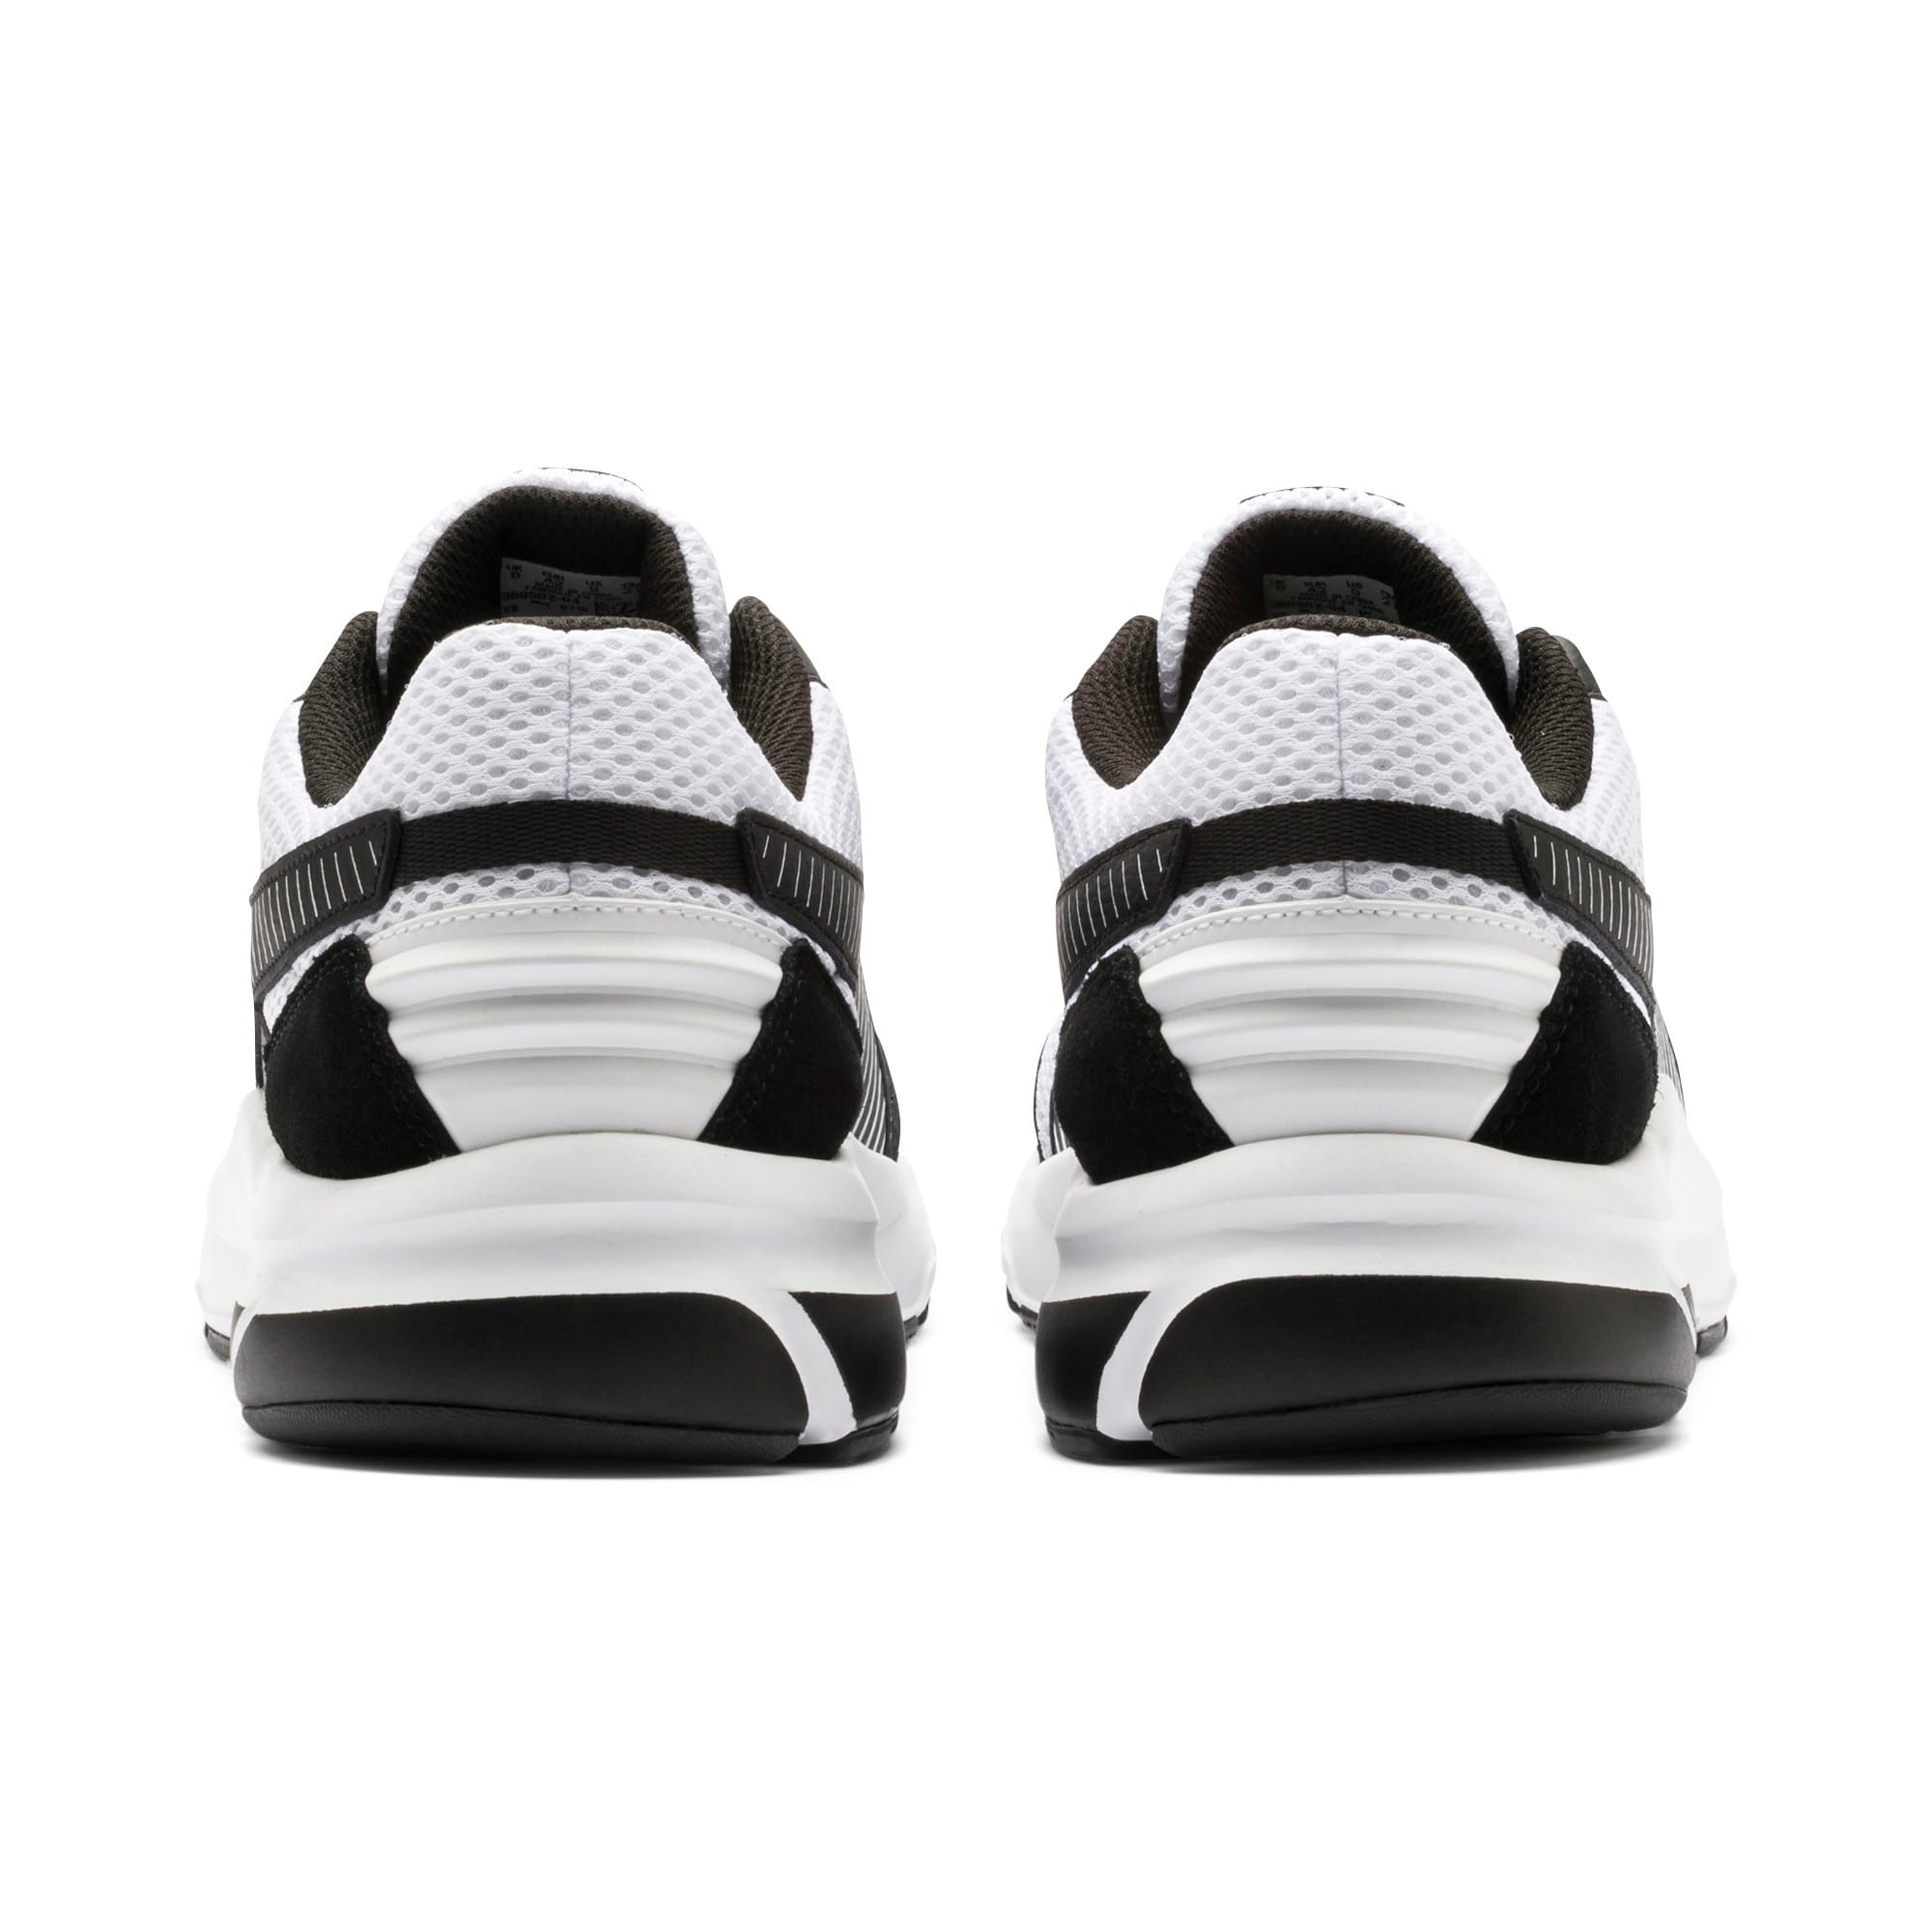 Thumbnail 4 of Future Runner Premium Laufschuhe, Puma White-Puma Black, medium